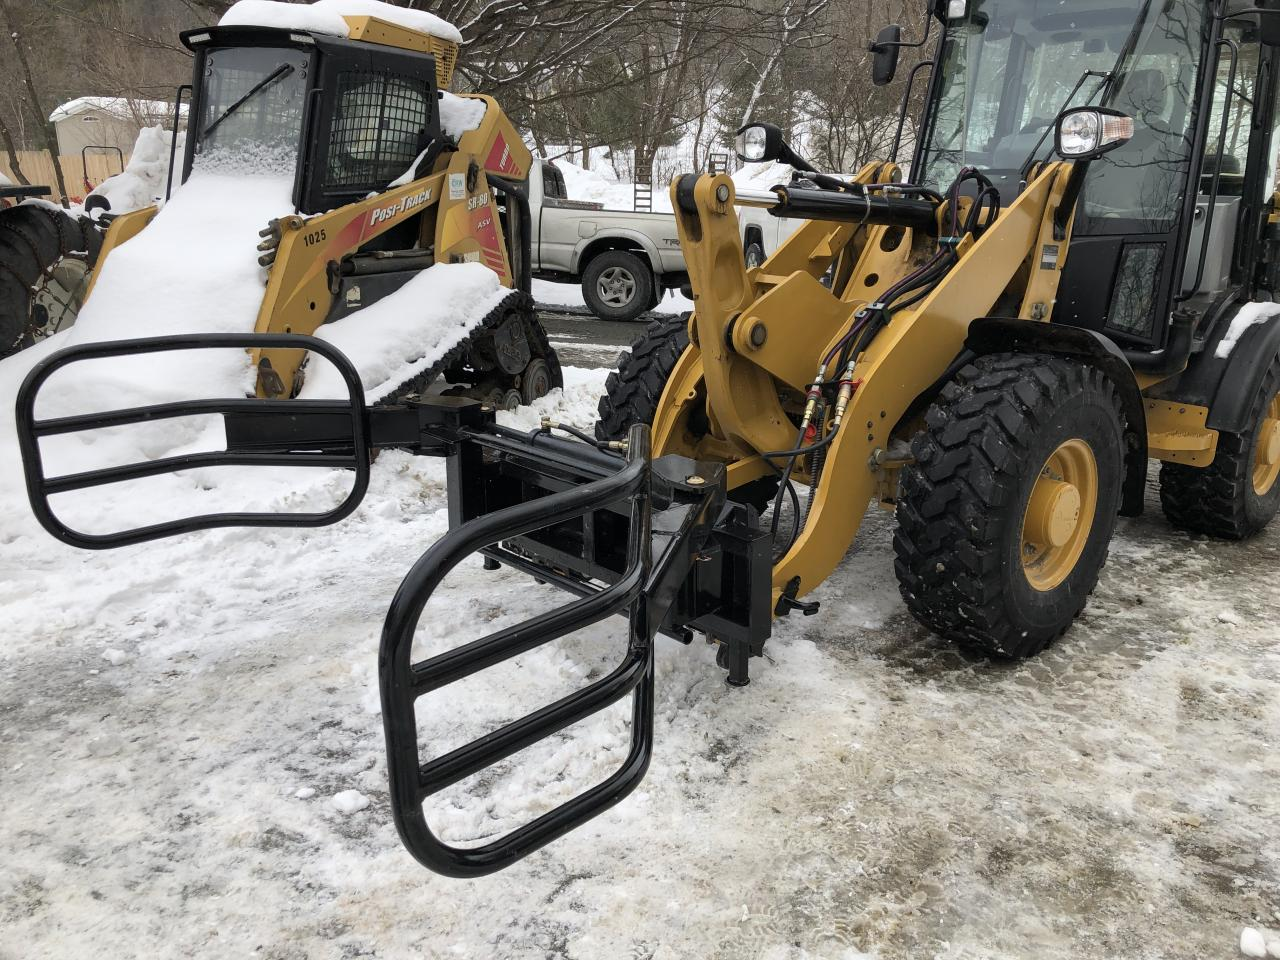 My Business - Skid Steer Attachments